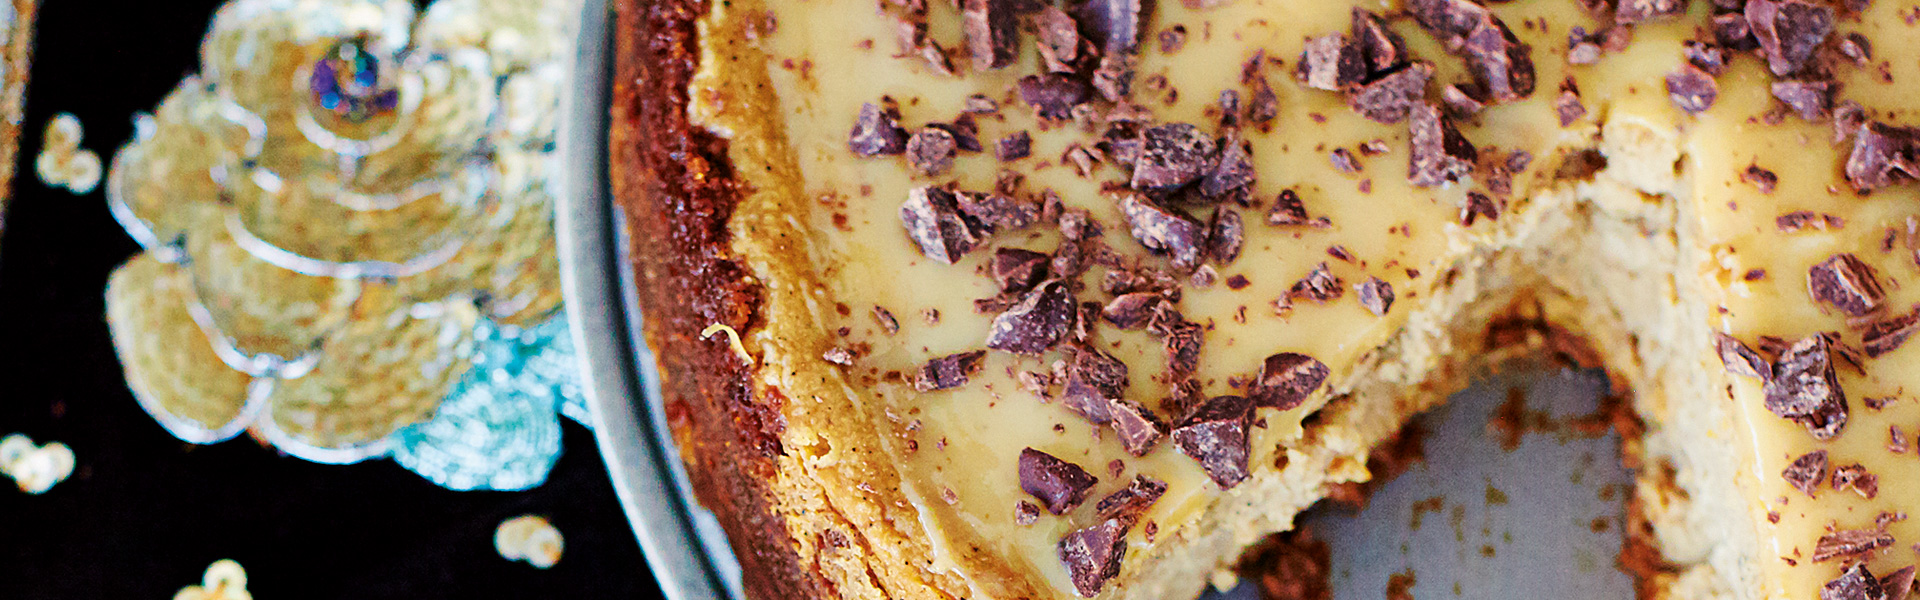 Kelis: Cappuccino Cheesecake  with Gingernut Base and Dulce de Leche Topping Recipe